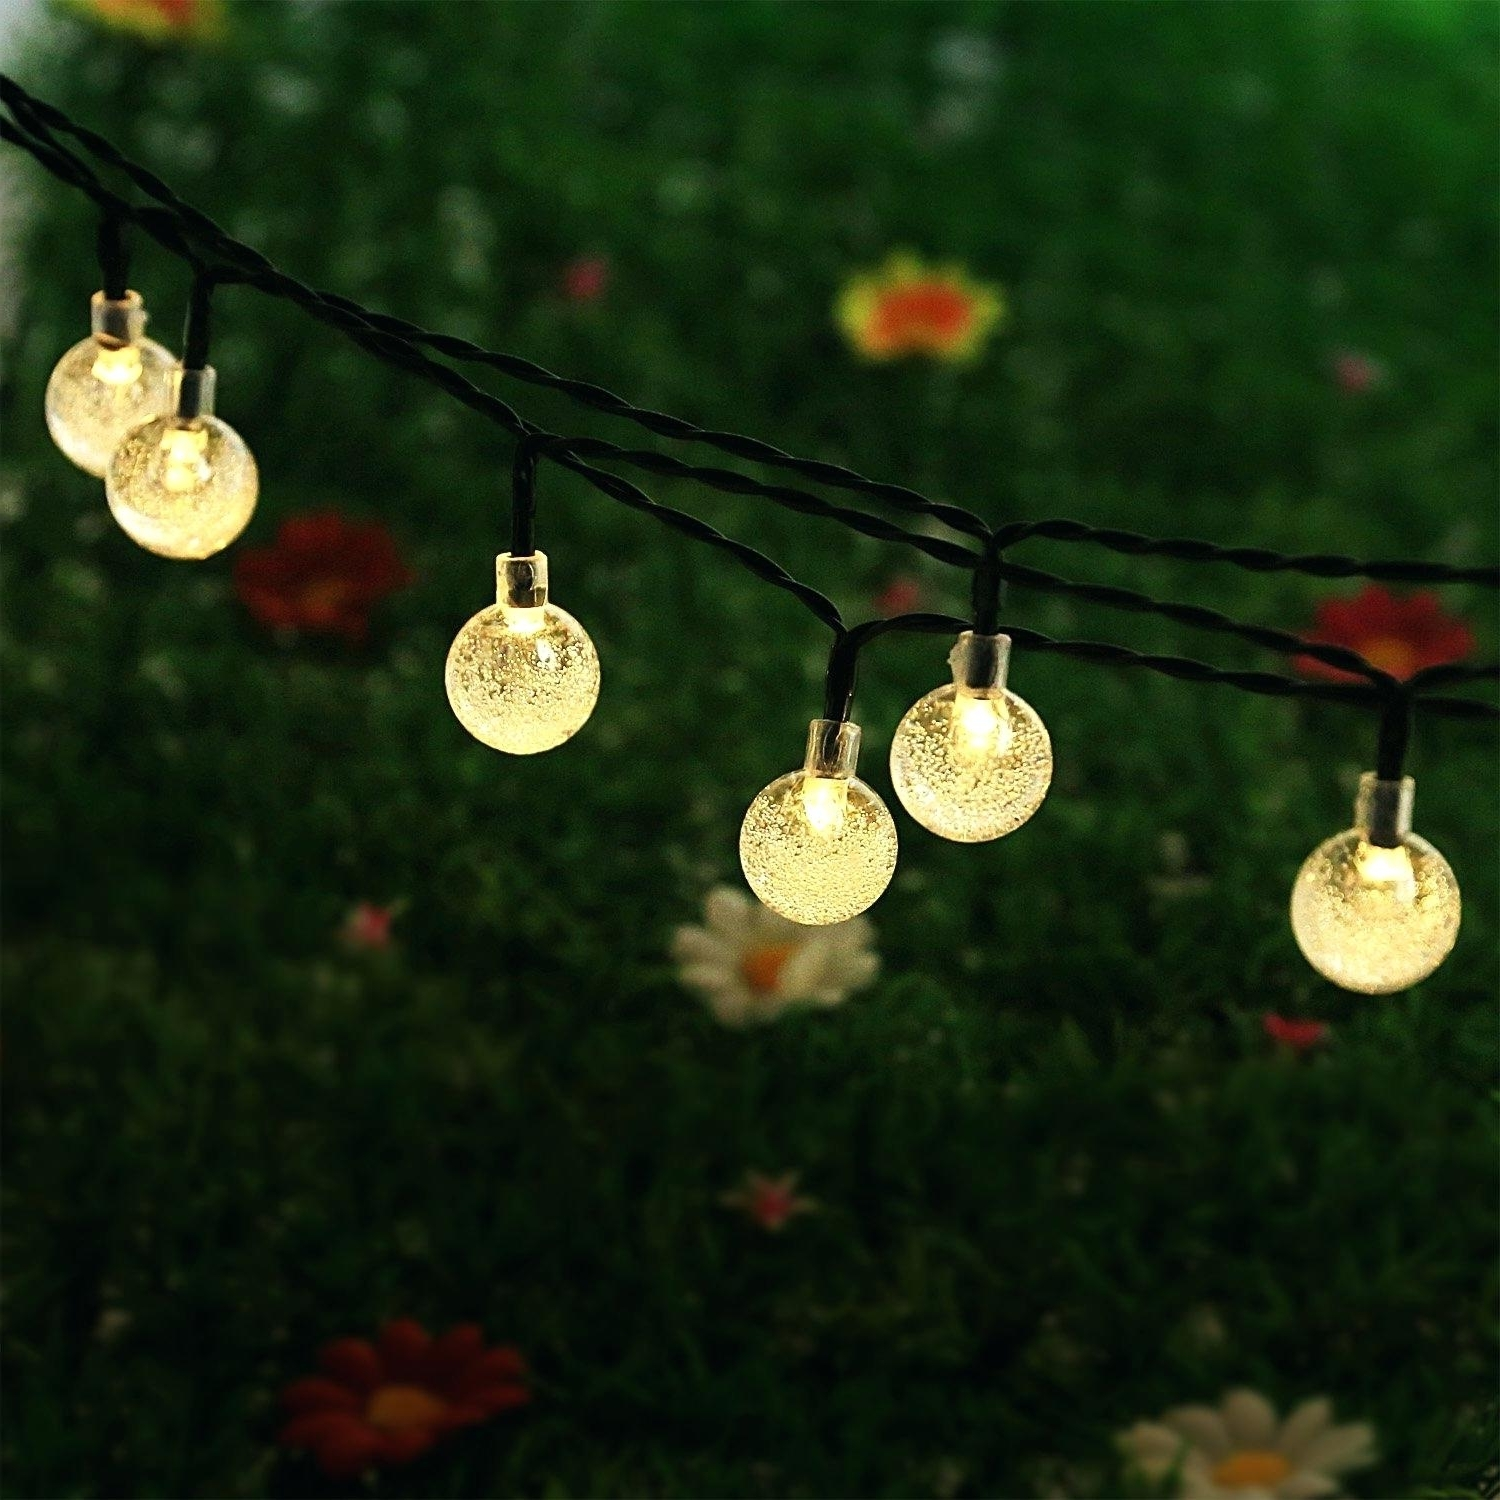 Favorite Outdoor Hanging Low Voltage Lights With Regard To Low Voltage Hanging String Lights — Lustwithalaugh Design : Limit An (View 18 of 20)